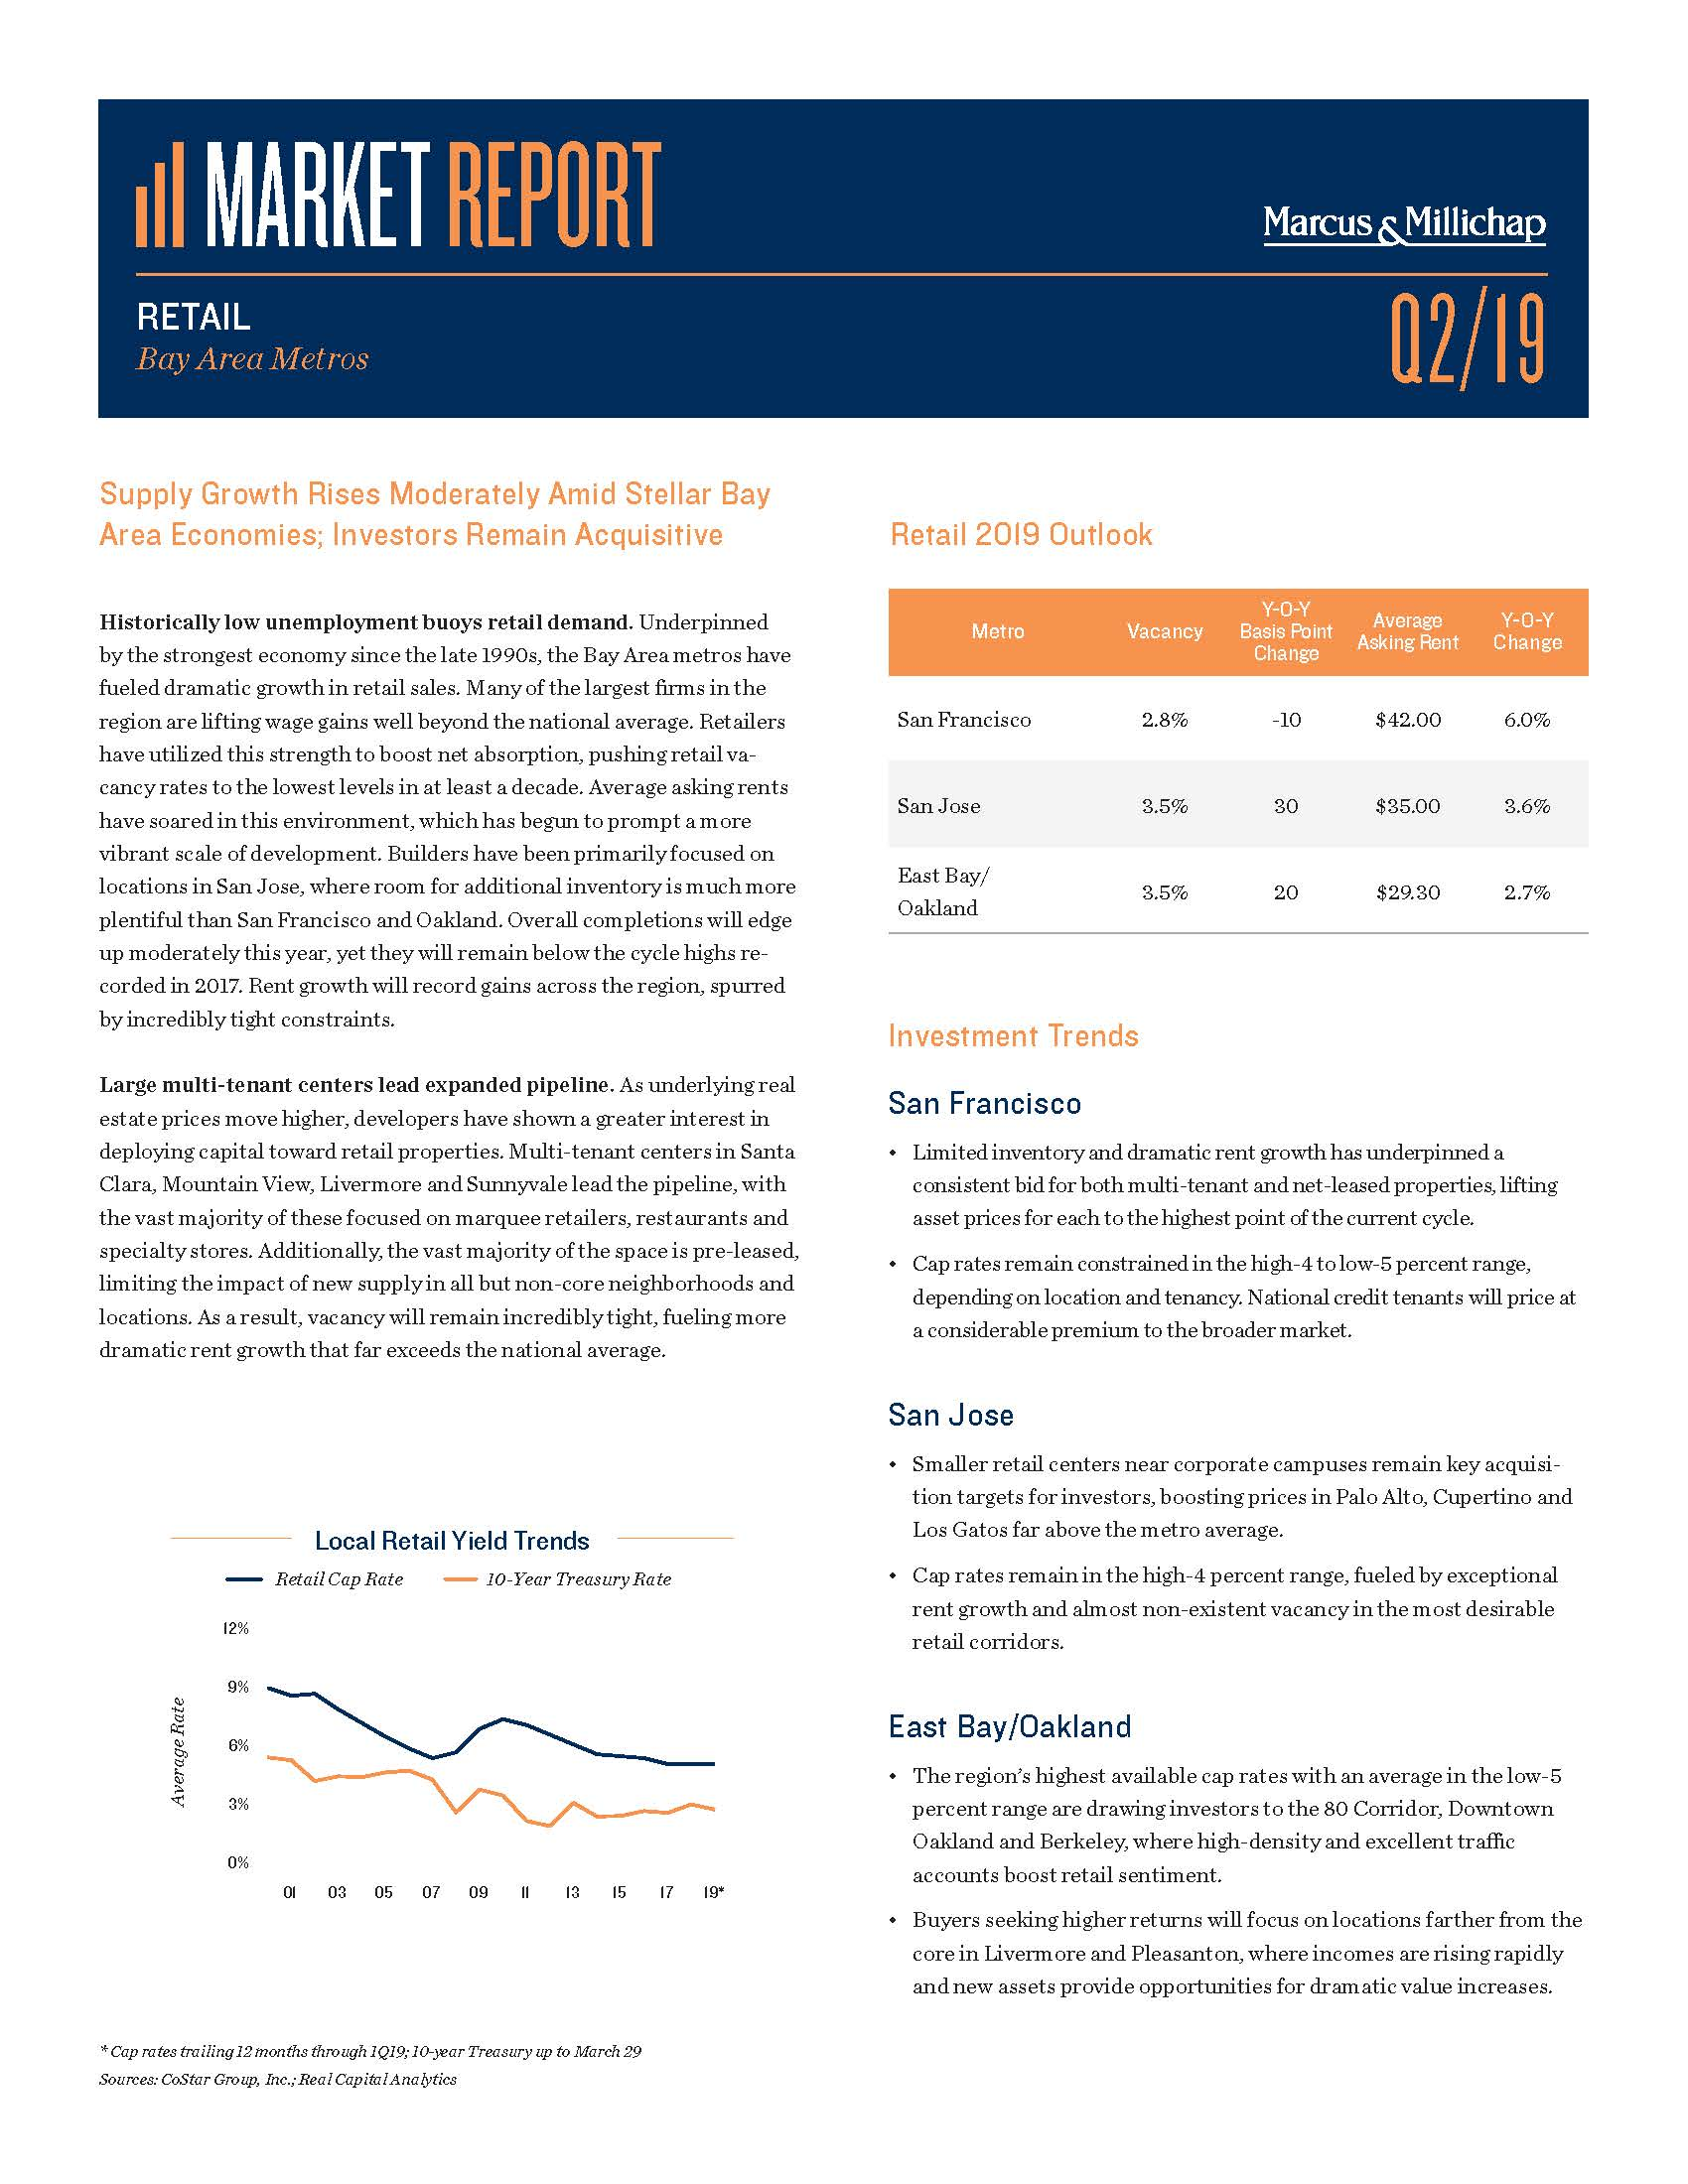 Market Report Q2/2019Bay Area - Retail - Historically low unemployment buoys retail demand. Underpinned by the strongest economy since the late 1990s, the Bay Area metros have fueled dramatic growth in retail sales. Many of the largest firms in the region are lifting wage gains well beyond the national average. Retailers have utilized this strength to boost net absorption, pushing retail vacancy rates to the lowest levels in at least a decade.